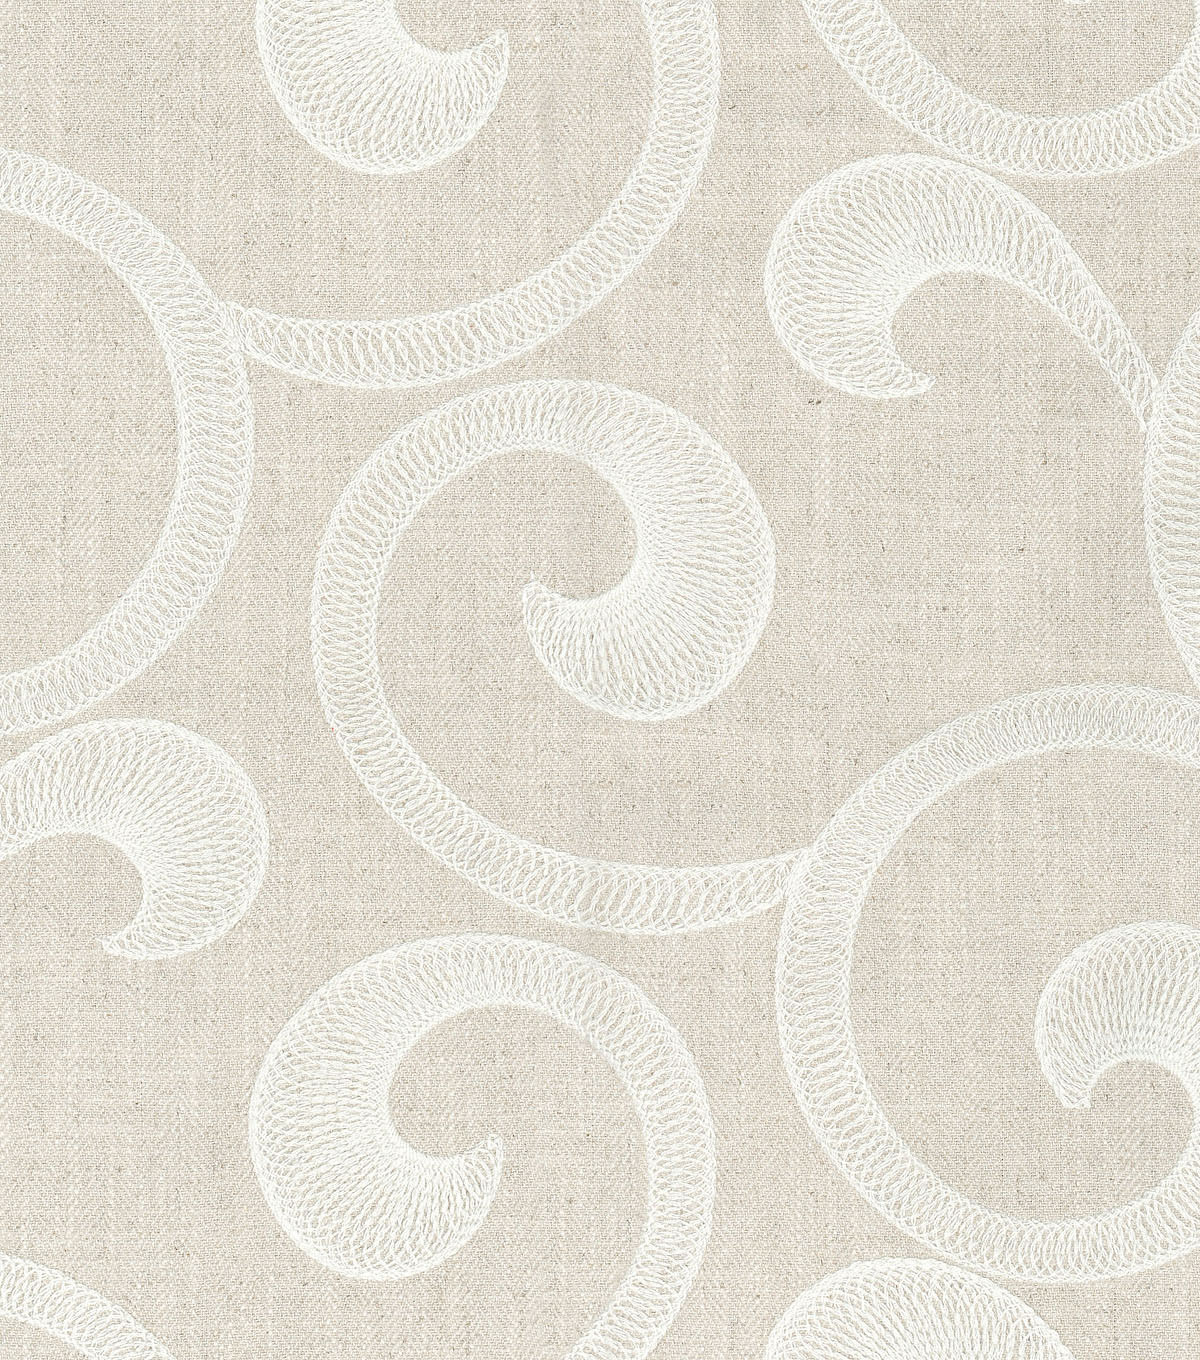 Williamsburg Upholstery Fabric-Hampton Scroll/Alabaster